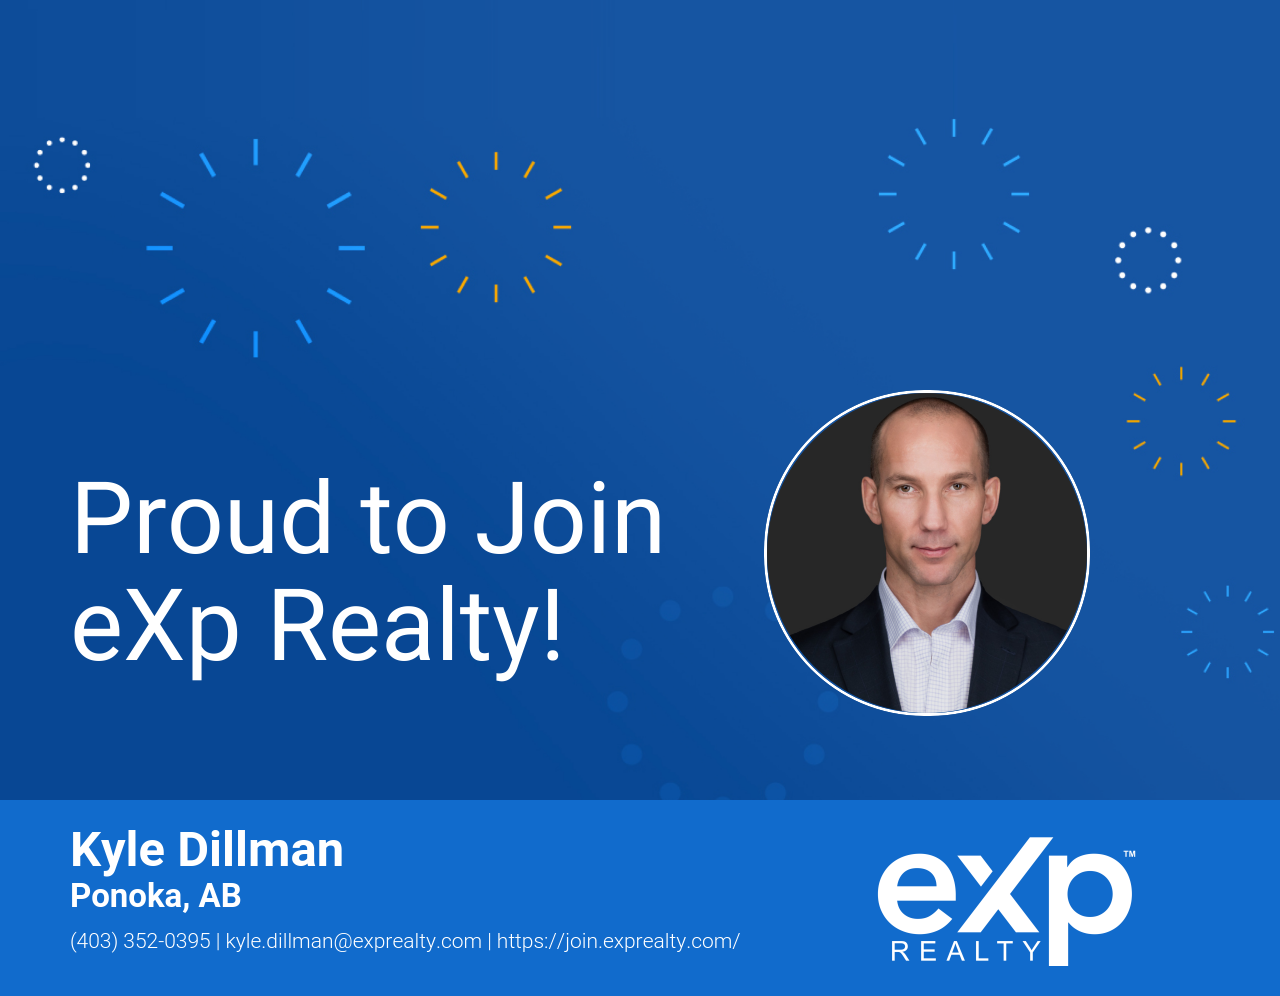 eXp Realty Welcomes Kyle Dillman!